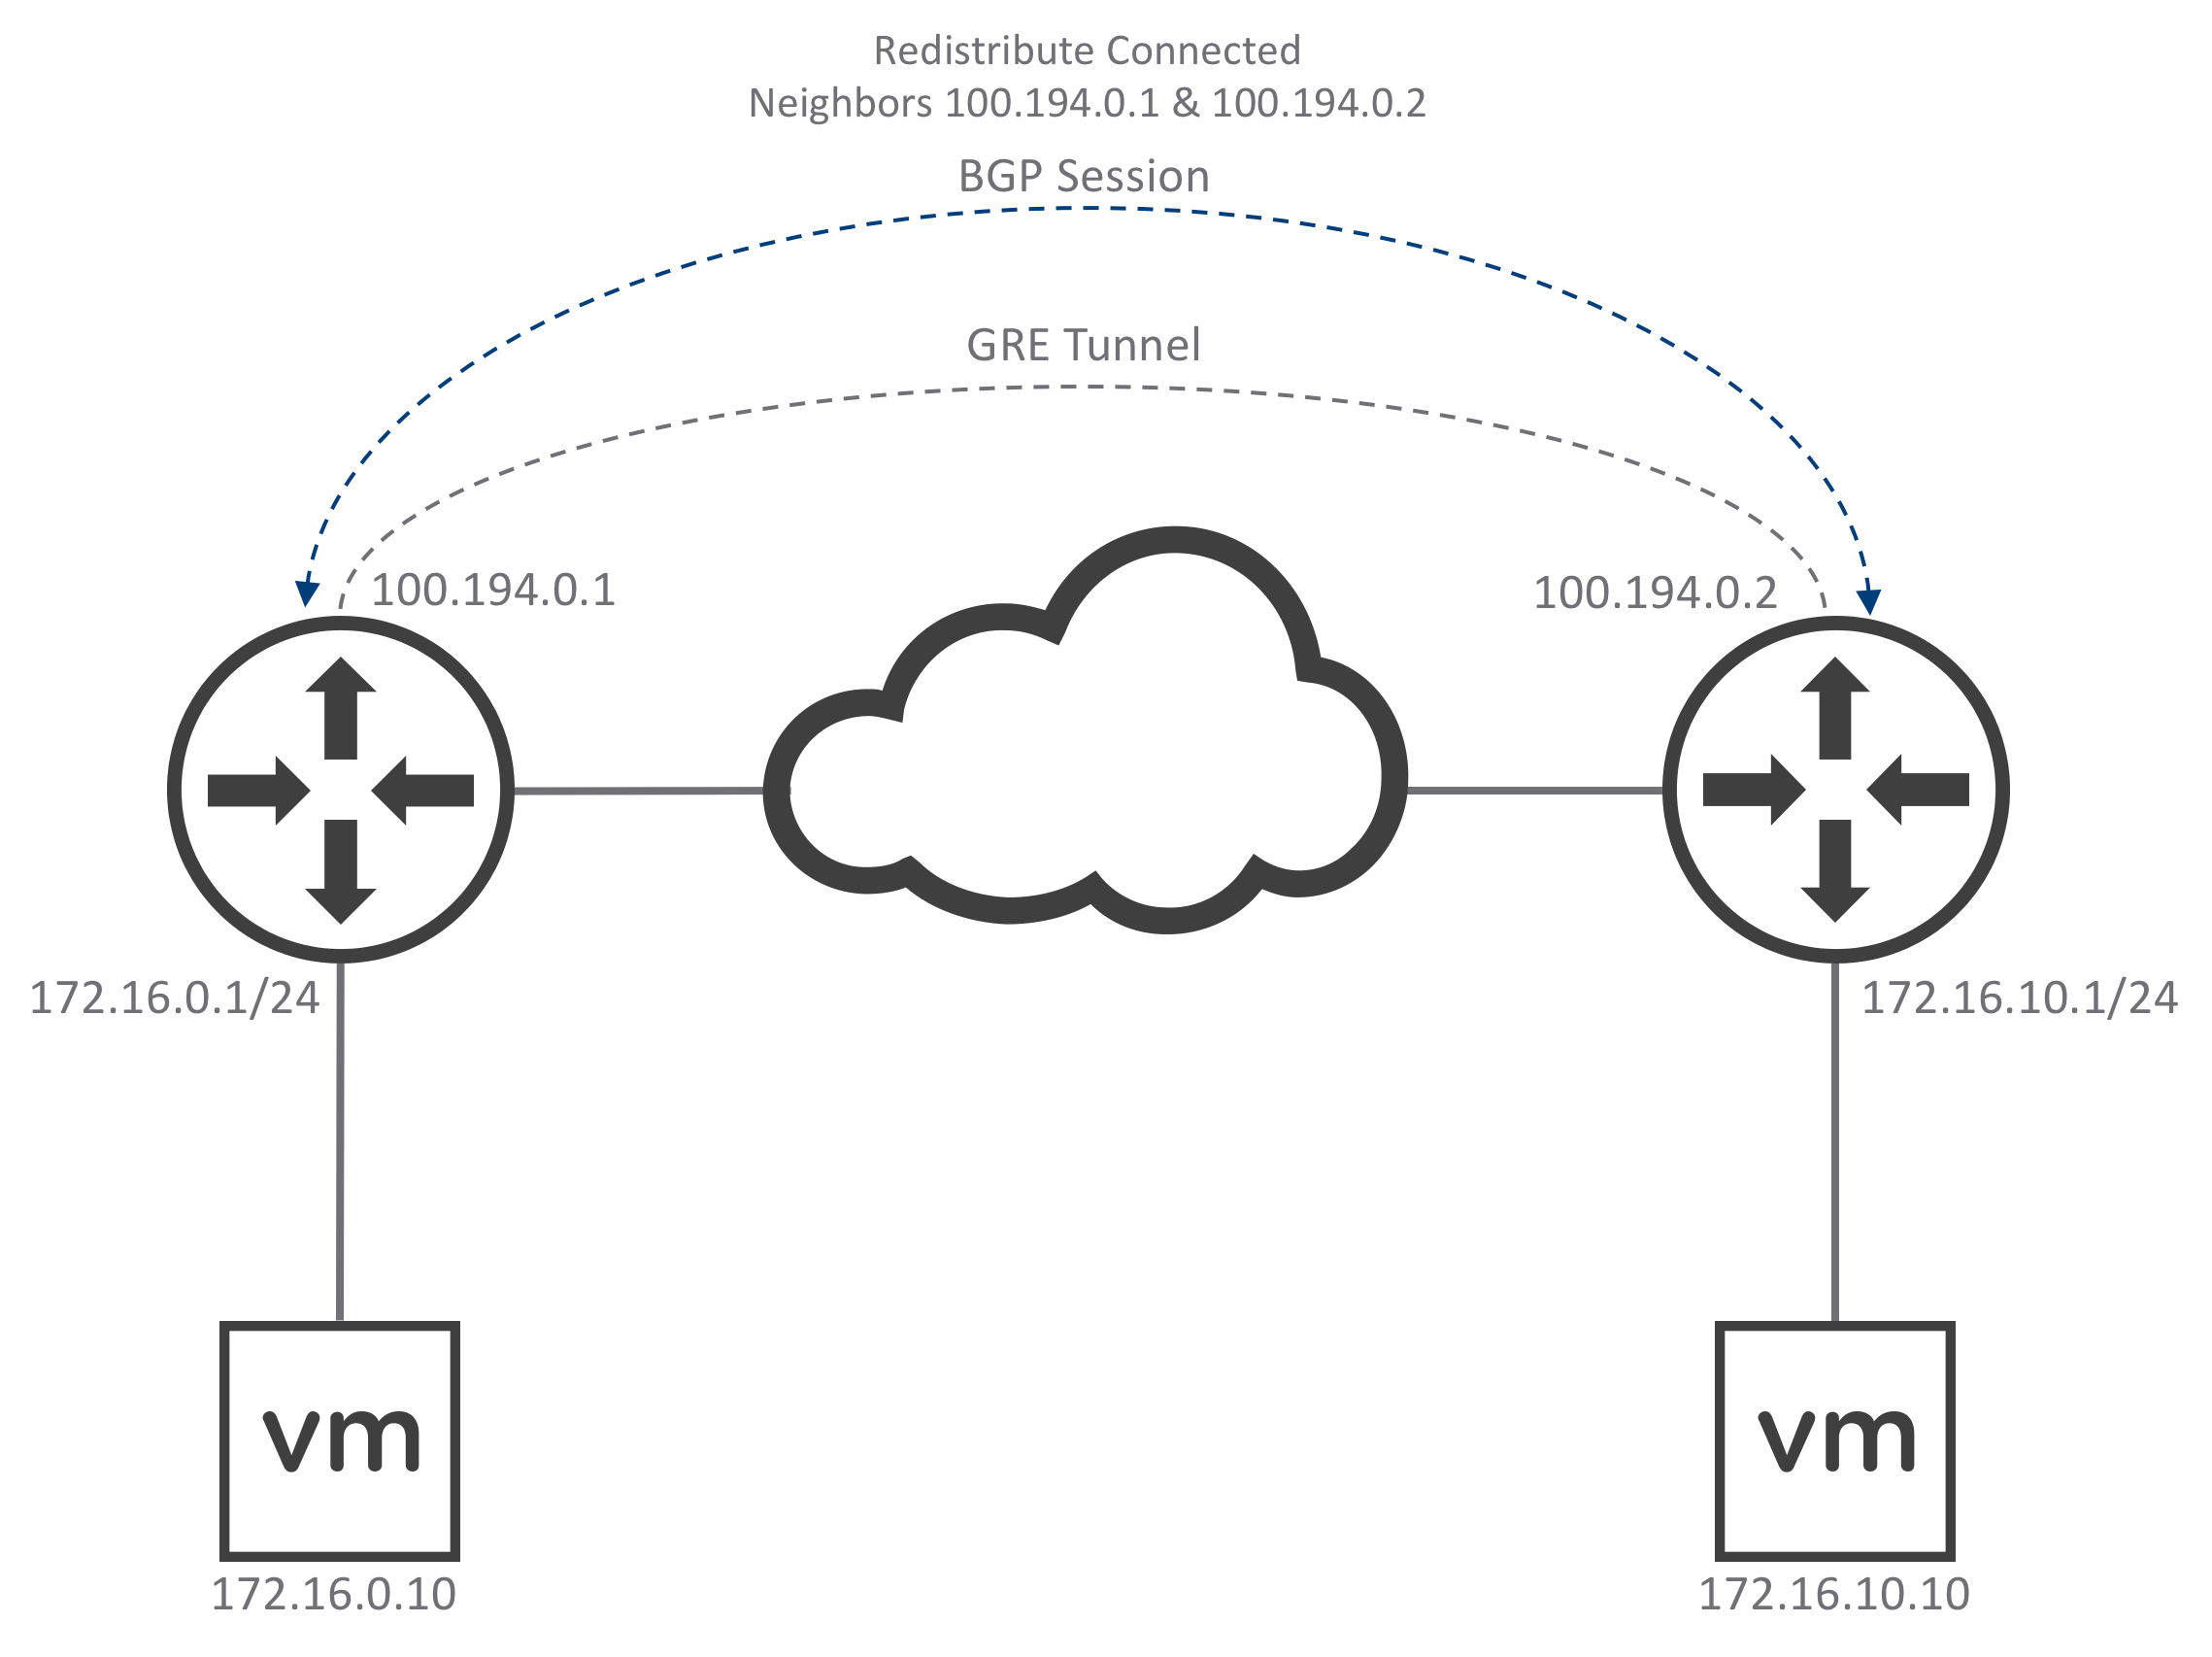 GRE Tunnels & Dynamic Routing in NSX 6 4 - Lostdomain